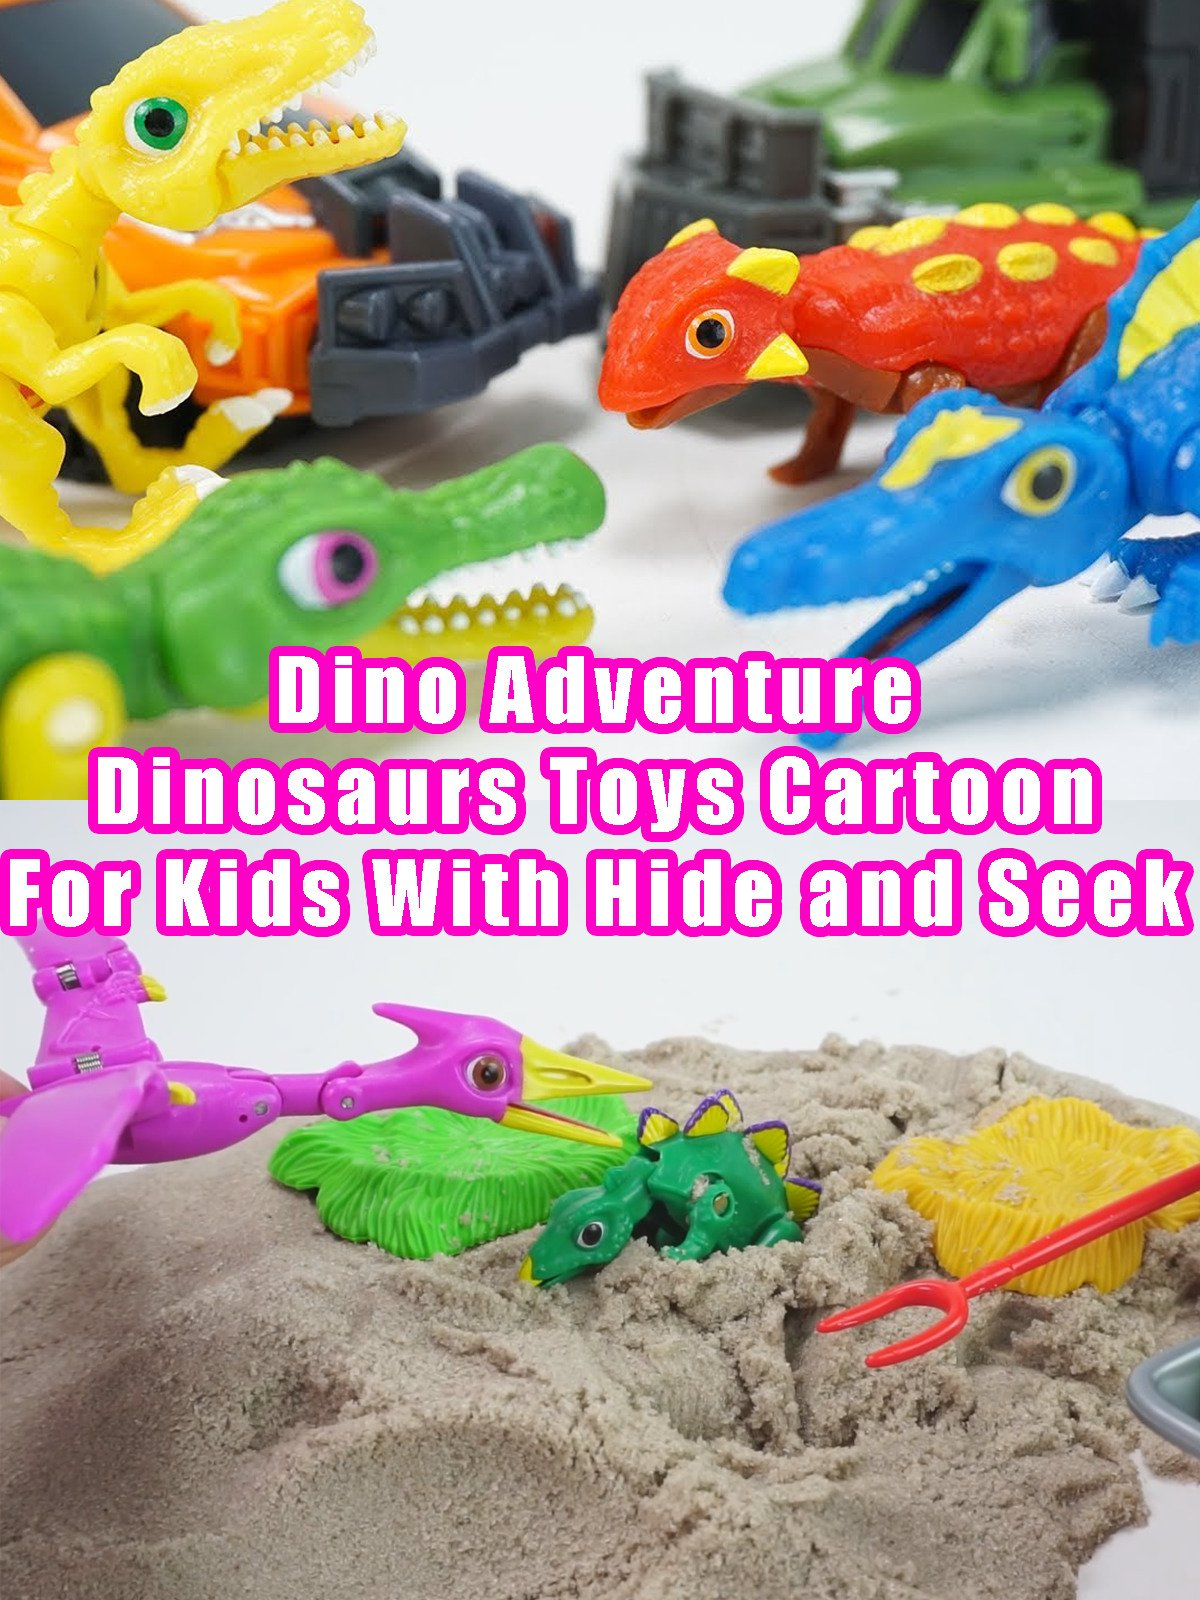 Dino Adventure - Dinosaurs Toys Cartoon For Kids With Hide and Seek